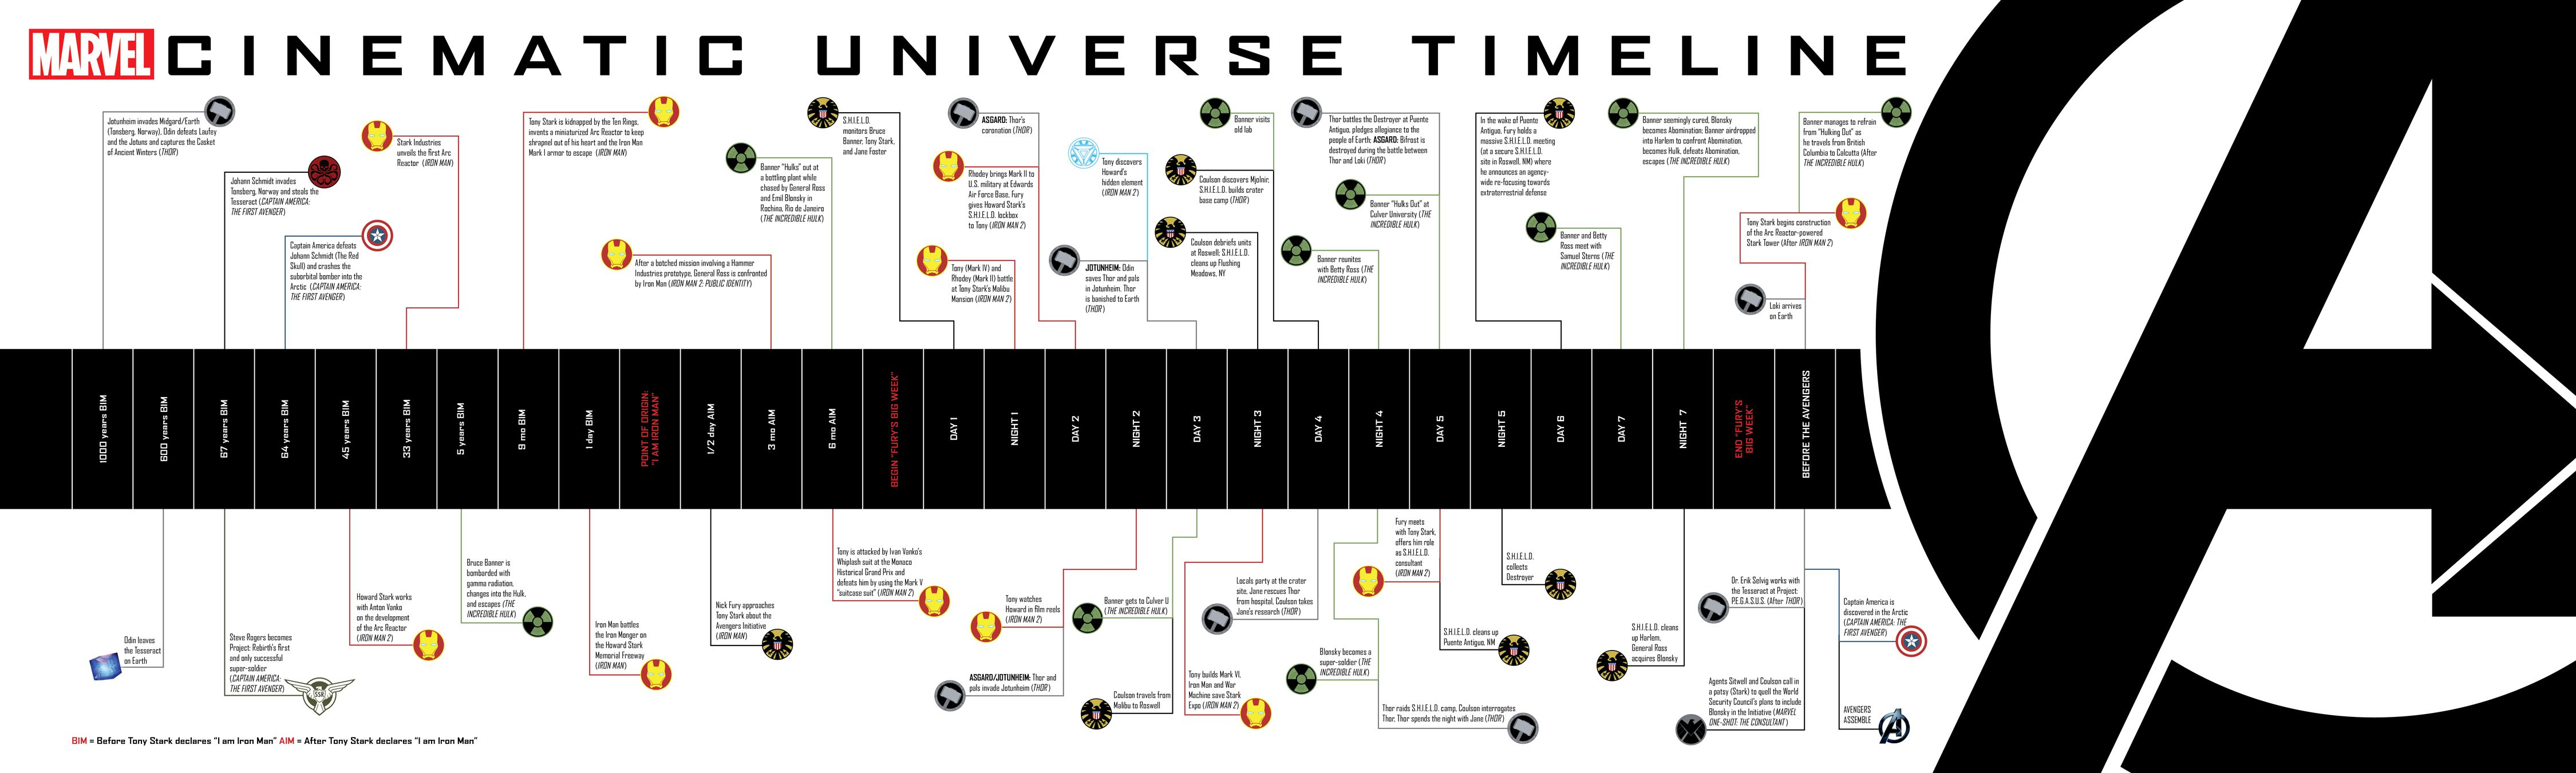 THE MIGHTY MARVEL CHRONOLOGY – A Beginner's Guide to the Cinematic Universe (Part 2)